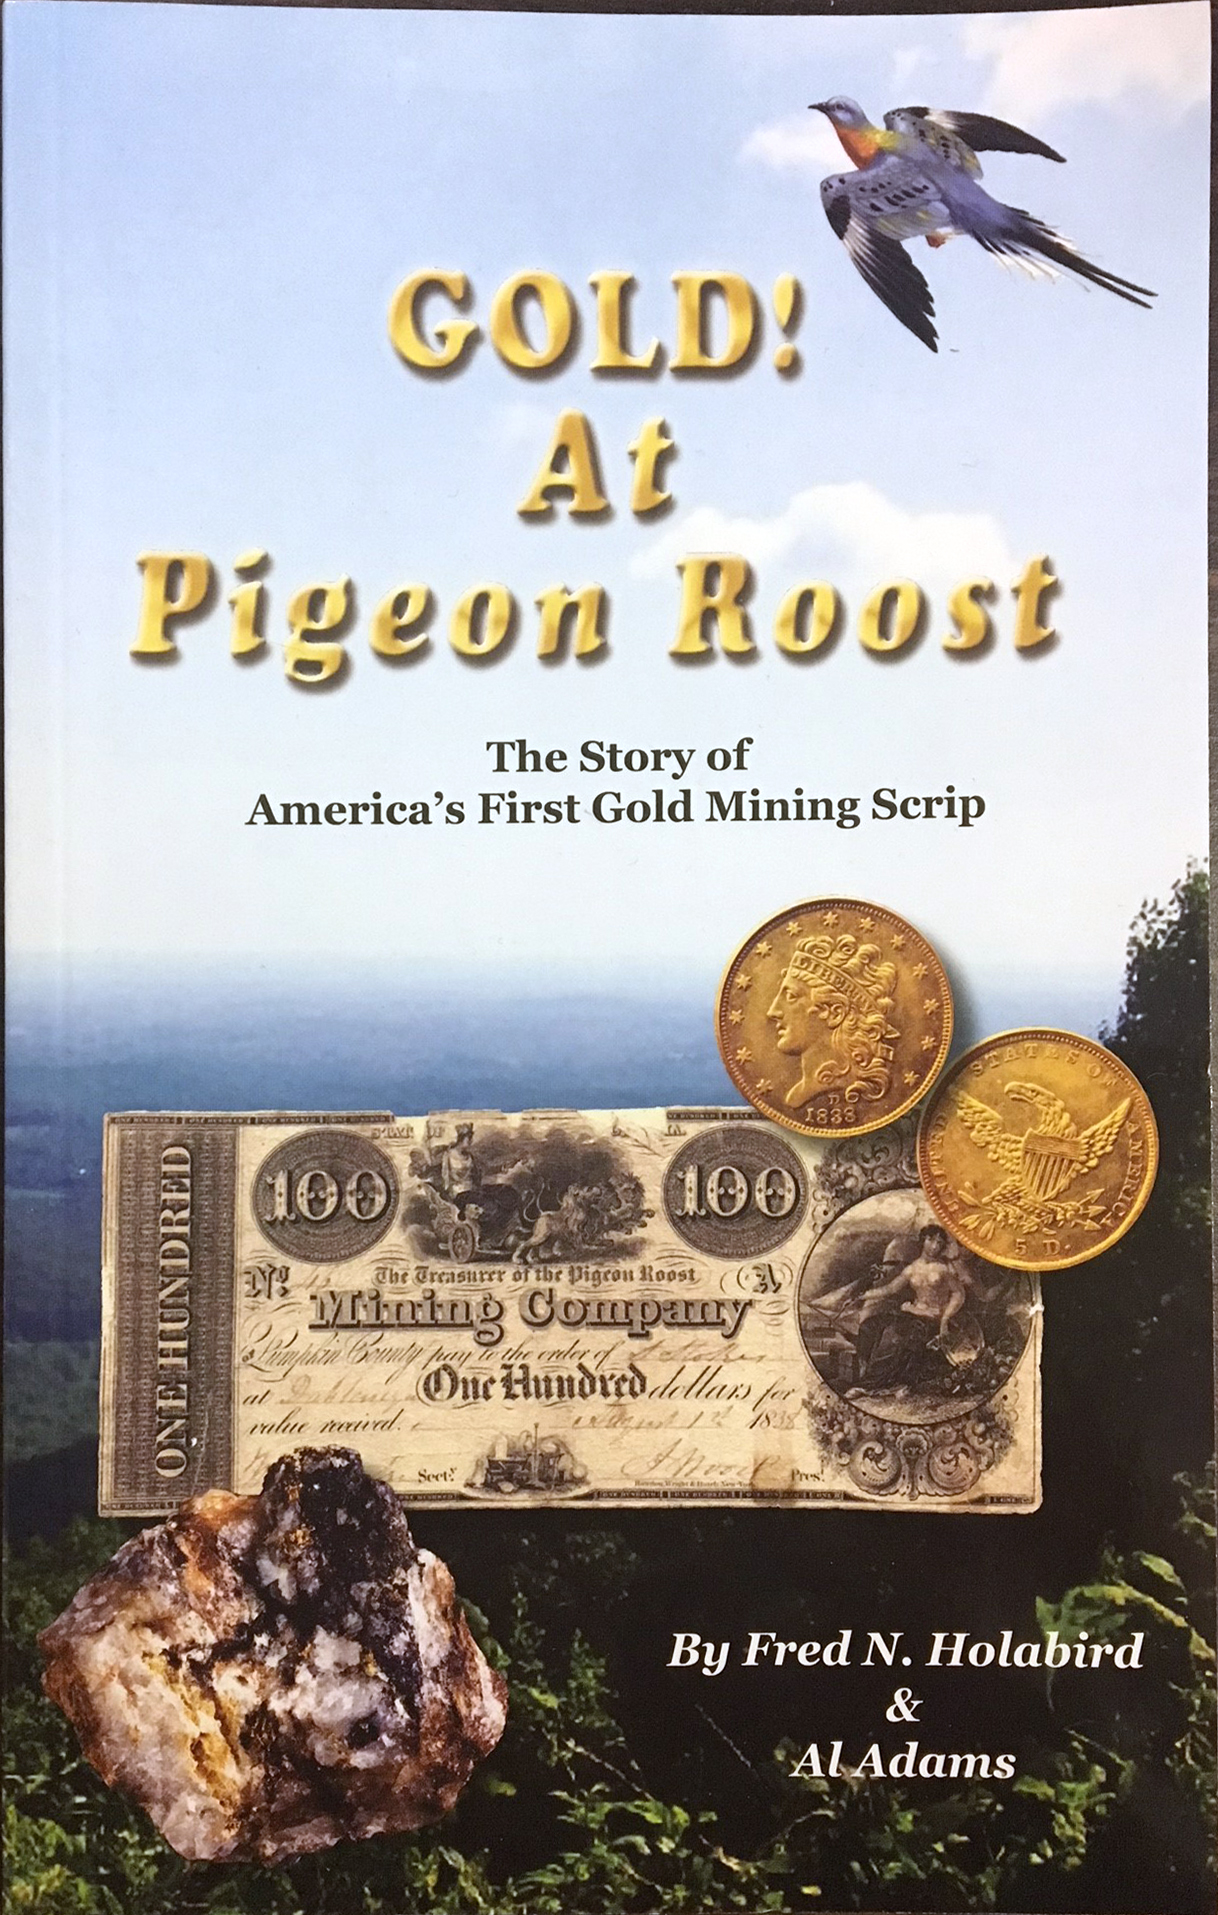 Gold! At Pigeon Roost